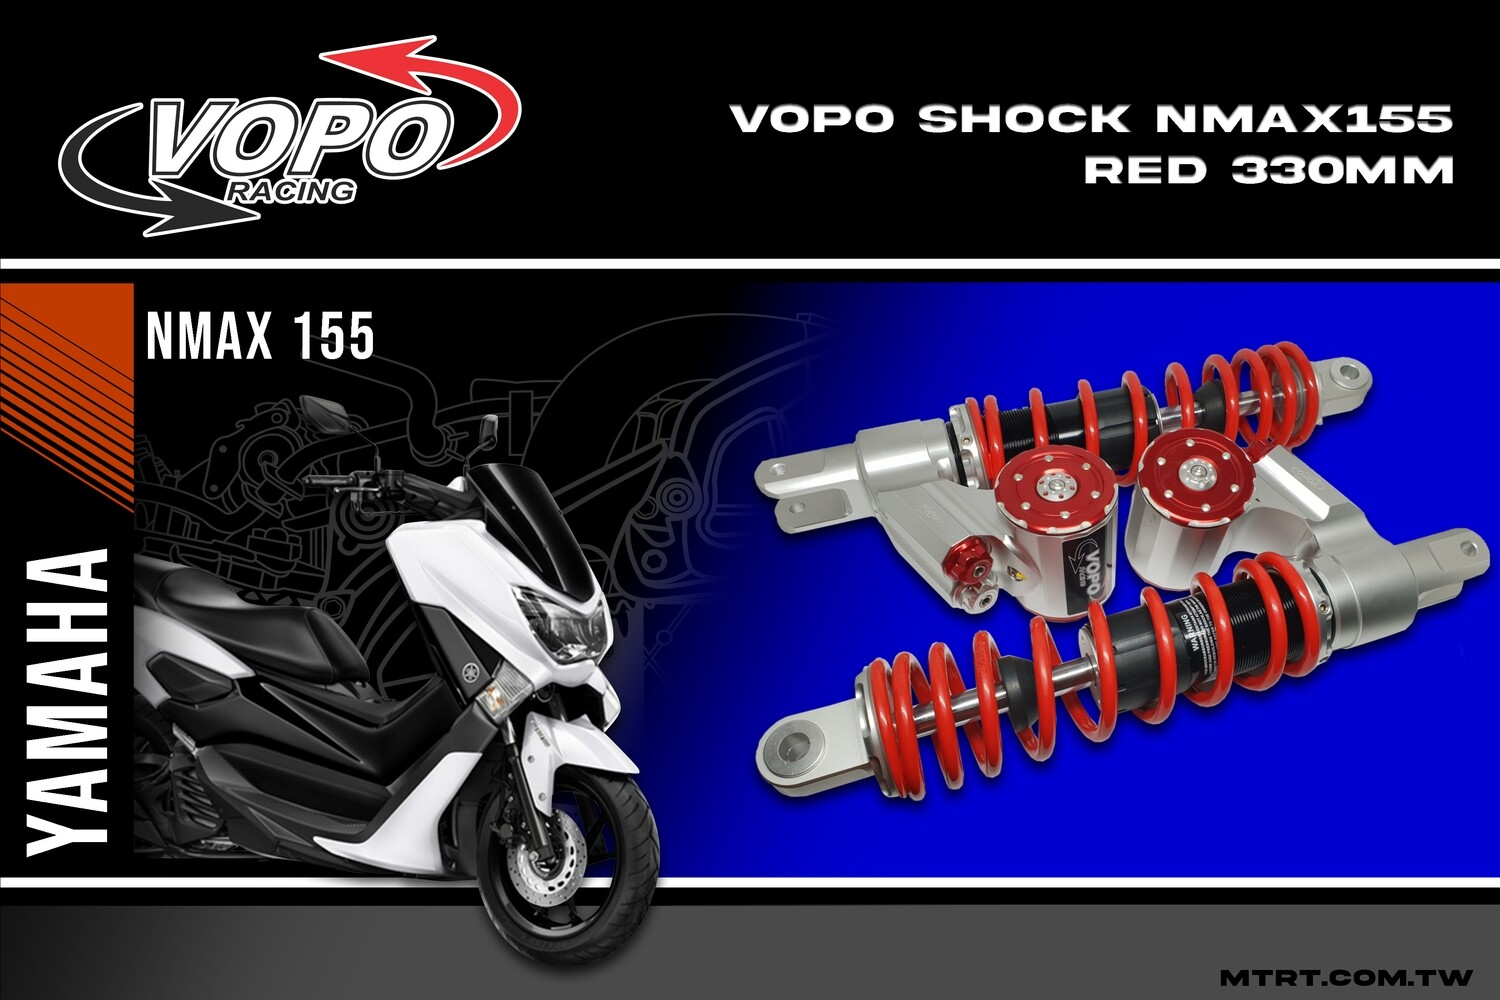 VOPO SHOCK NMAX155  RED 330MM